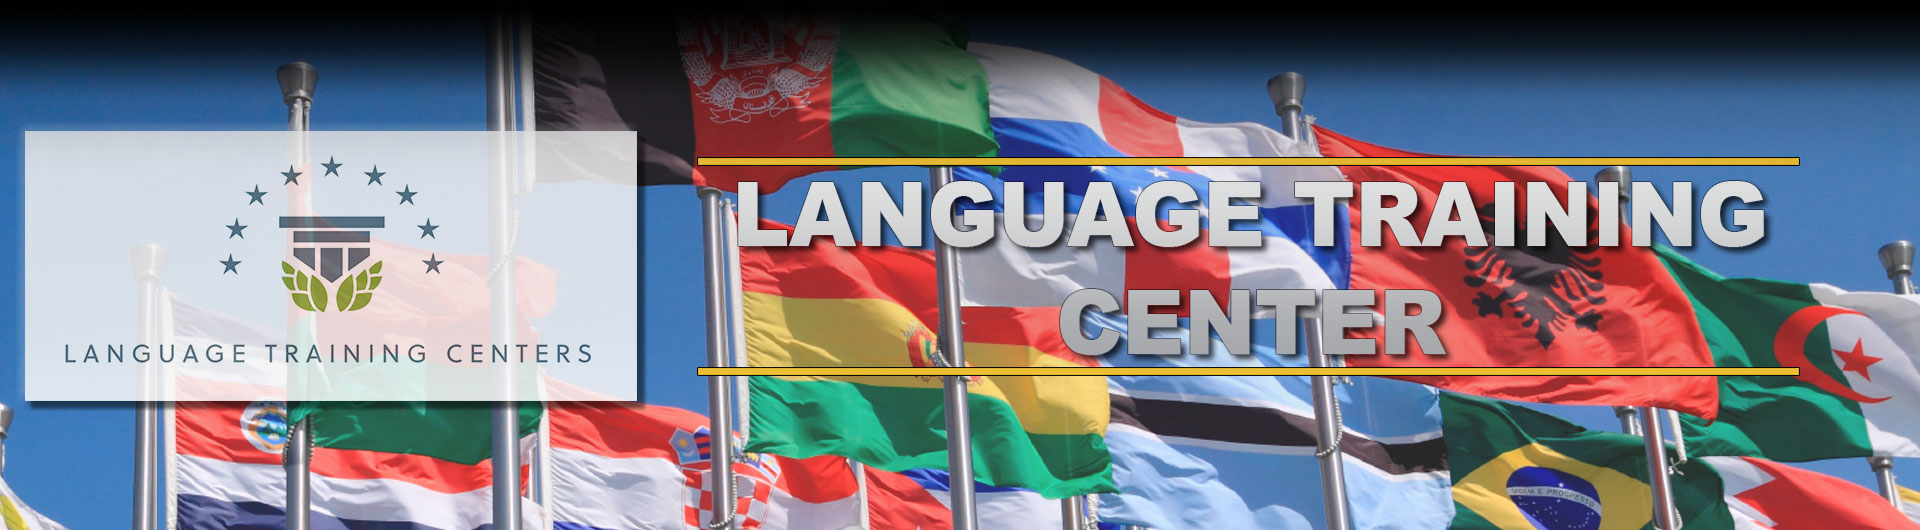 CSULB Language Training Center Initiative